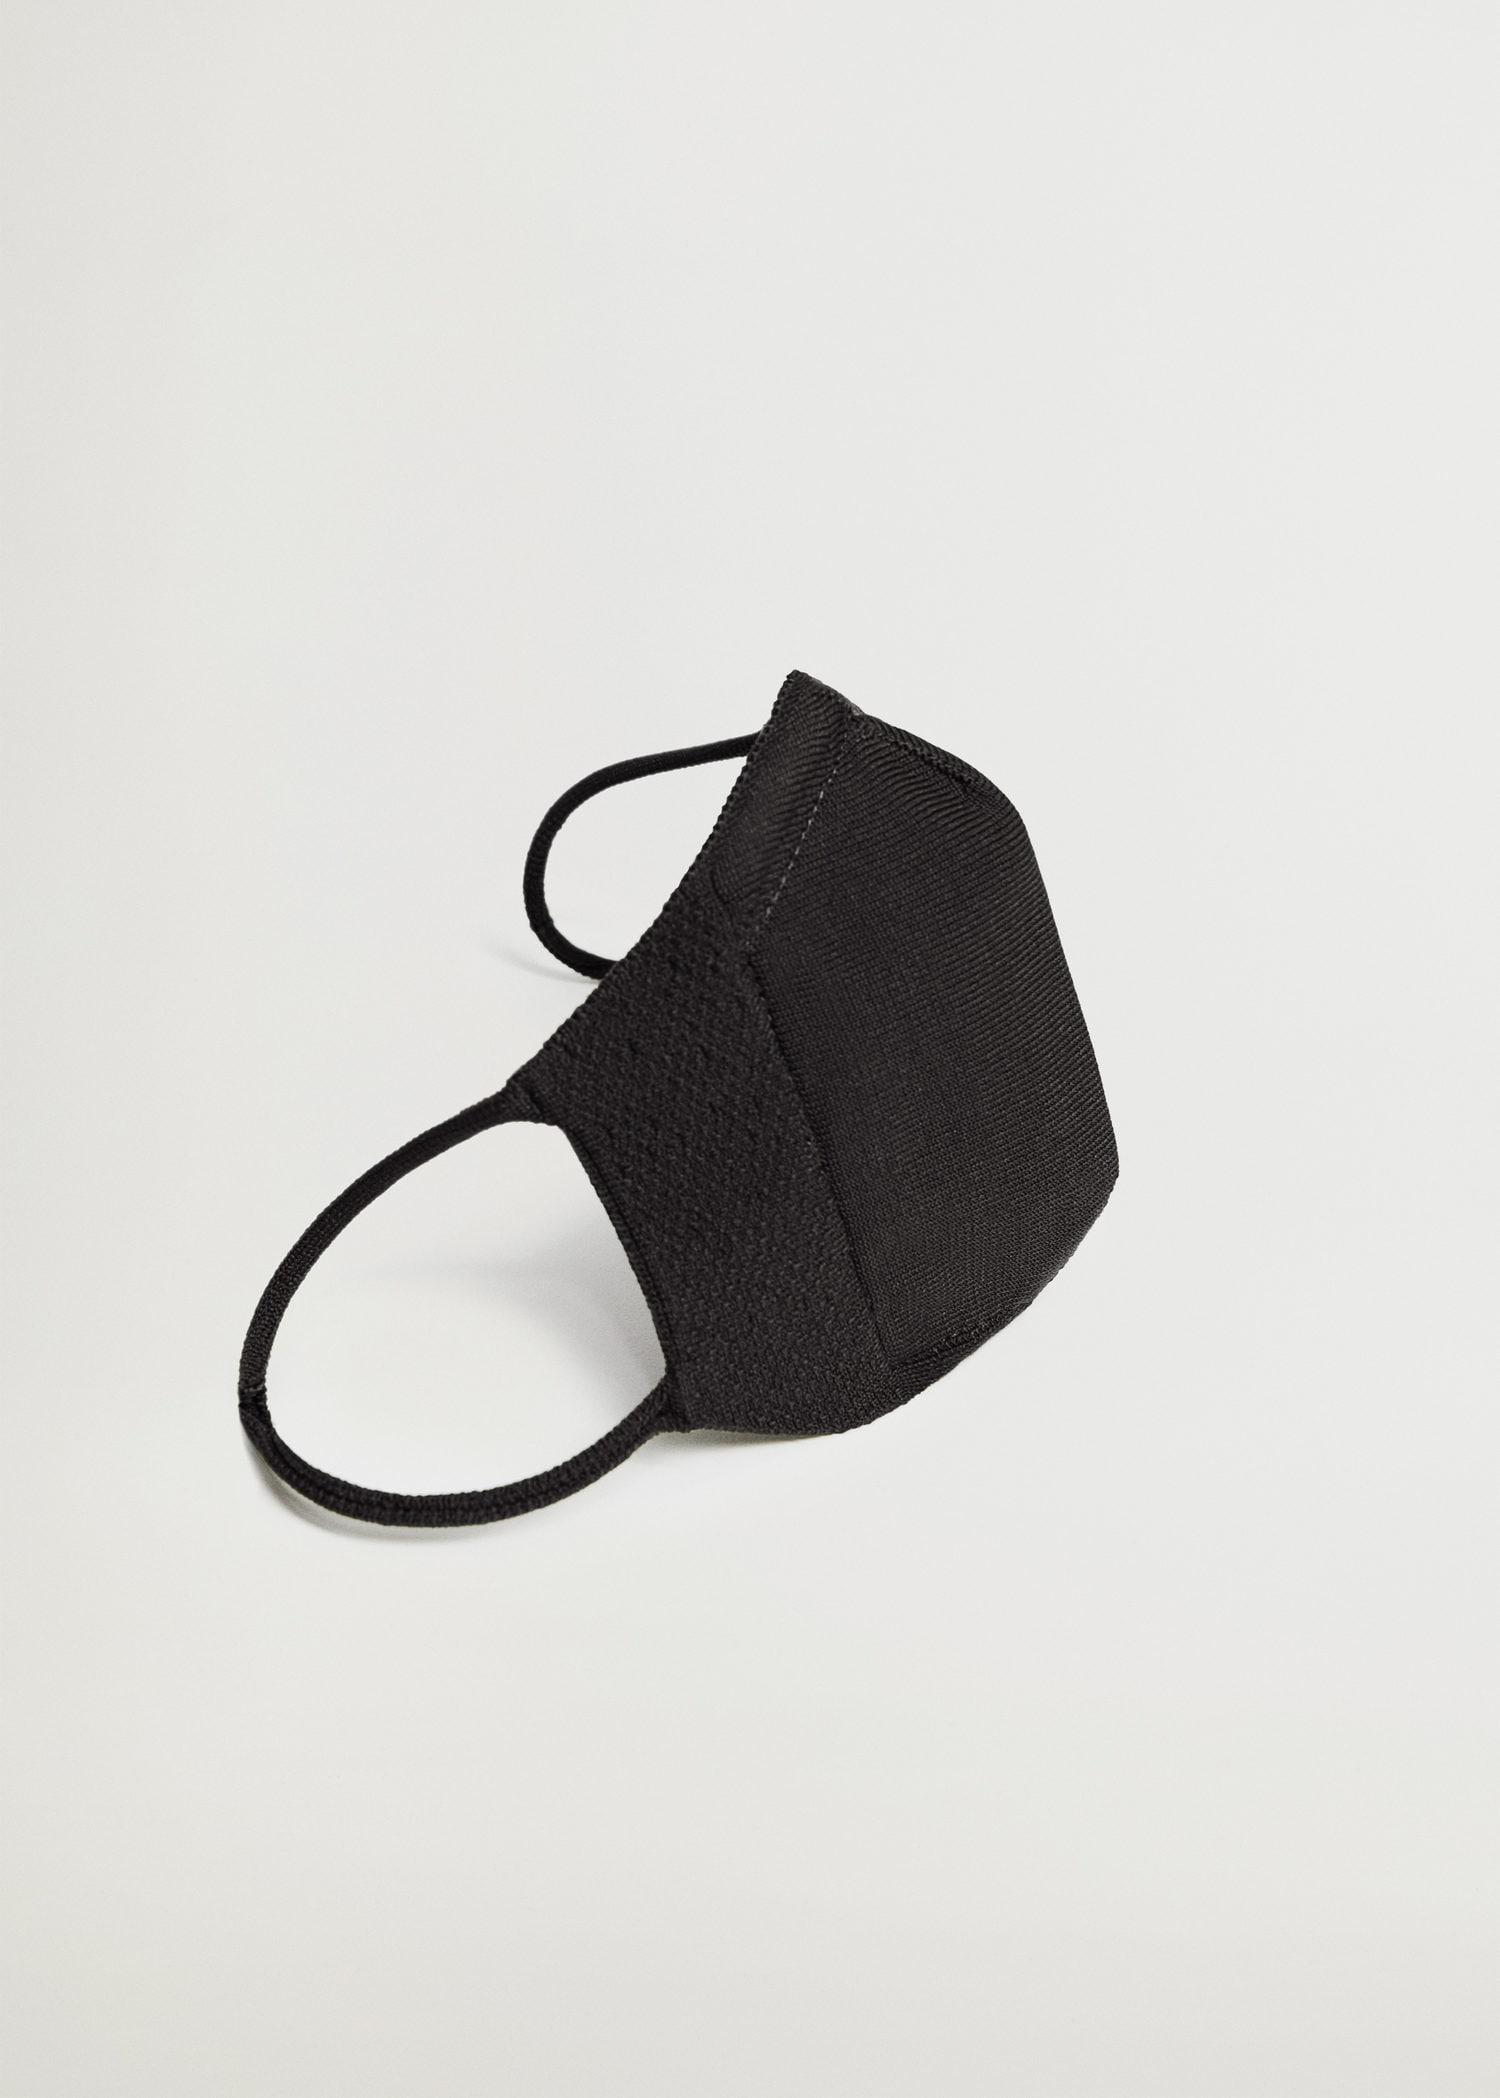 Reusable approved knitted face mask